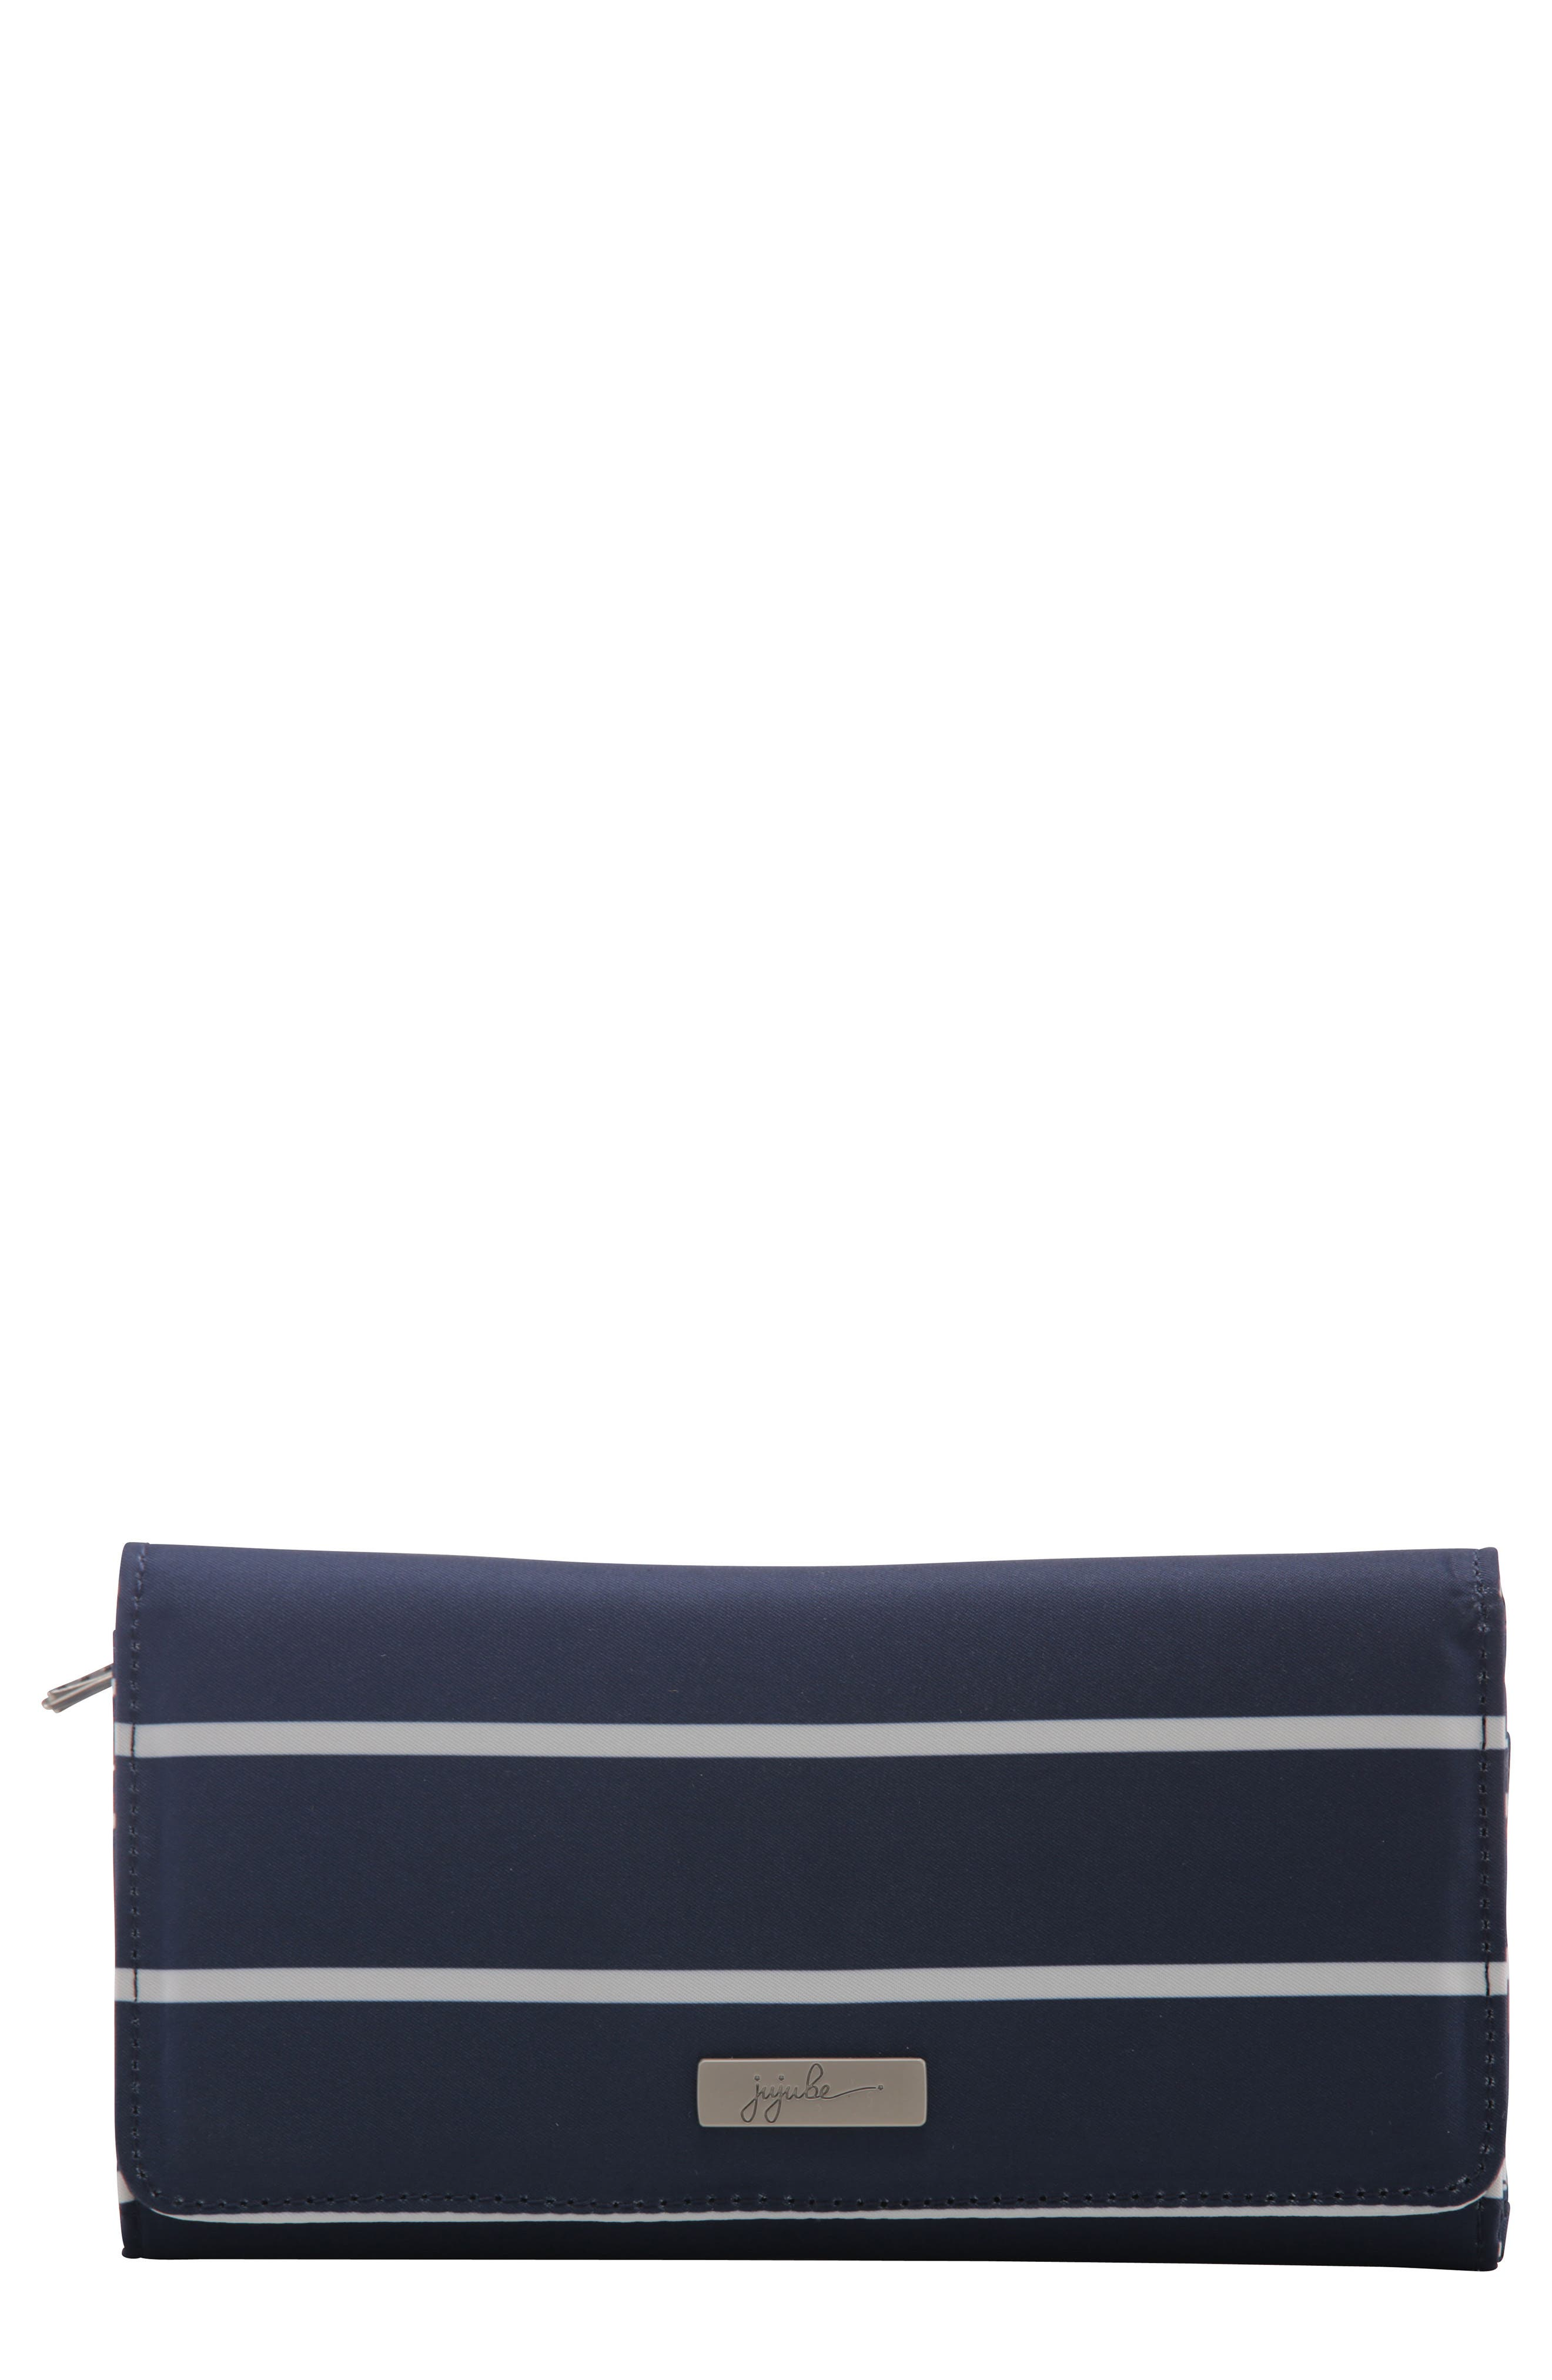 Be Rich - Coastal Collection Trifold Clutch Wallet,                         Main,                         color, Nantucket